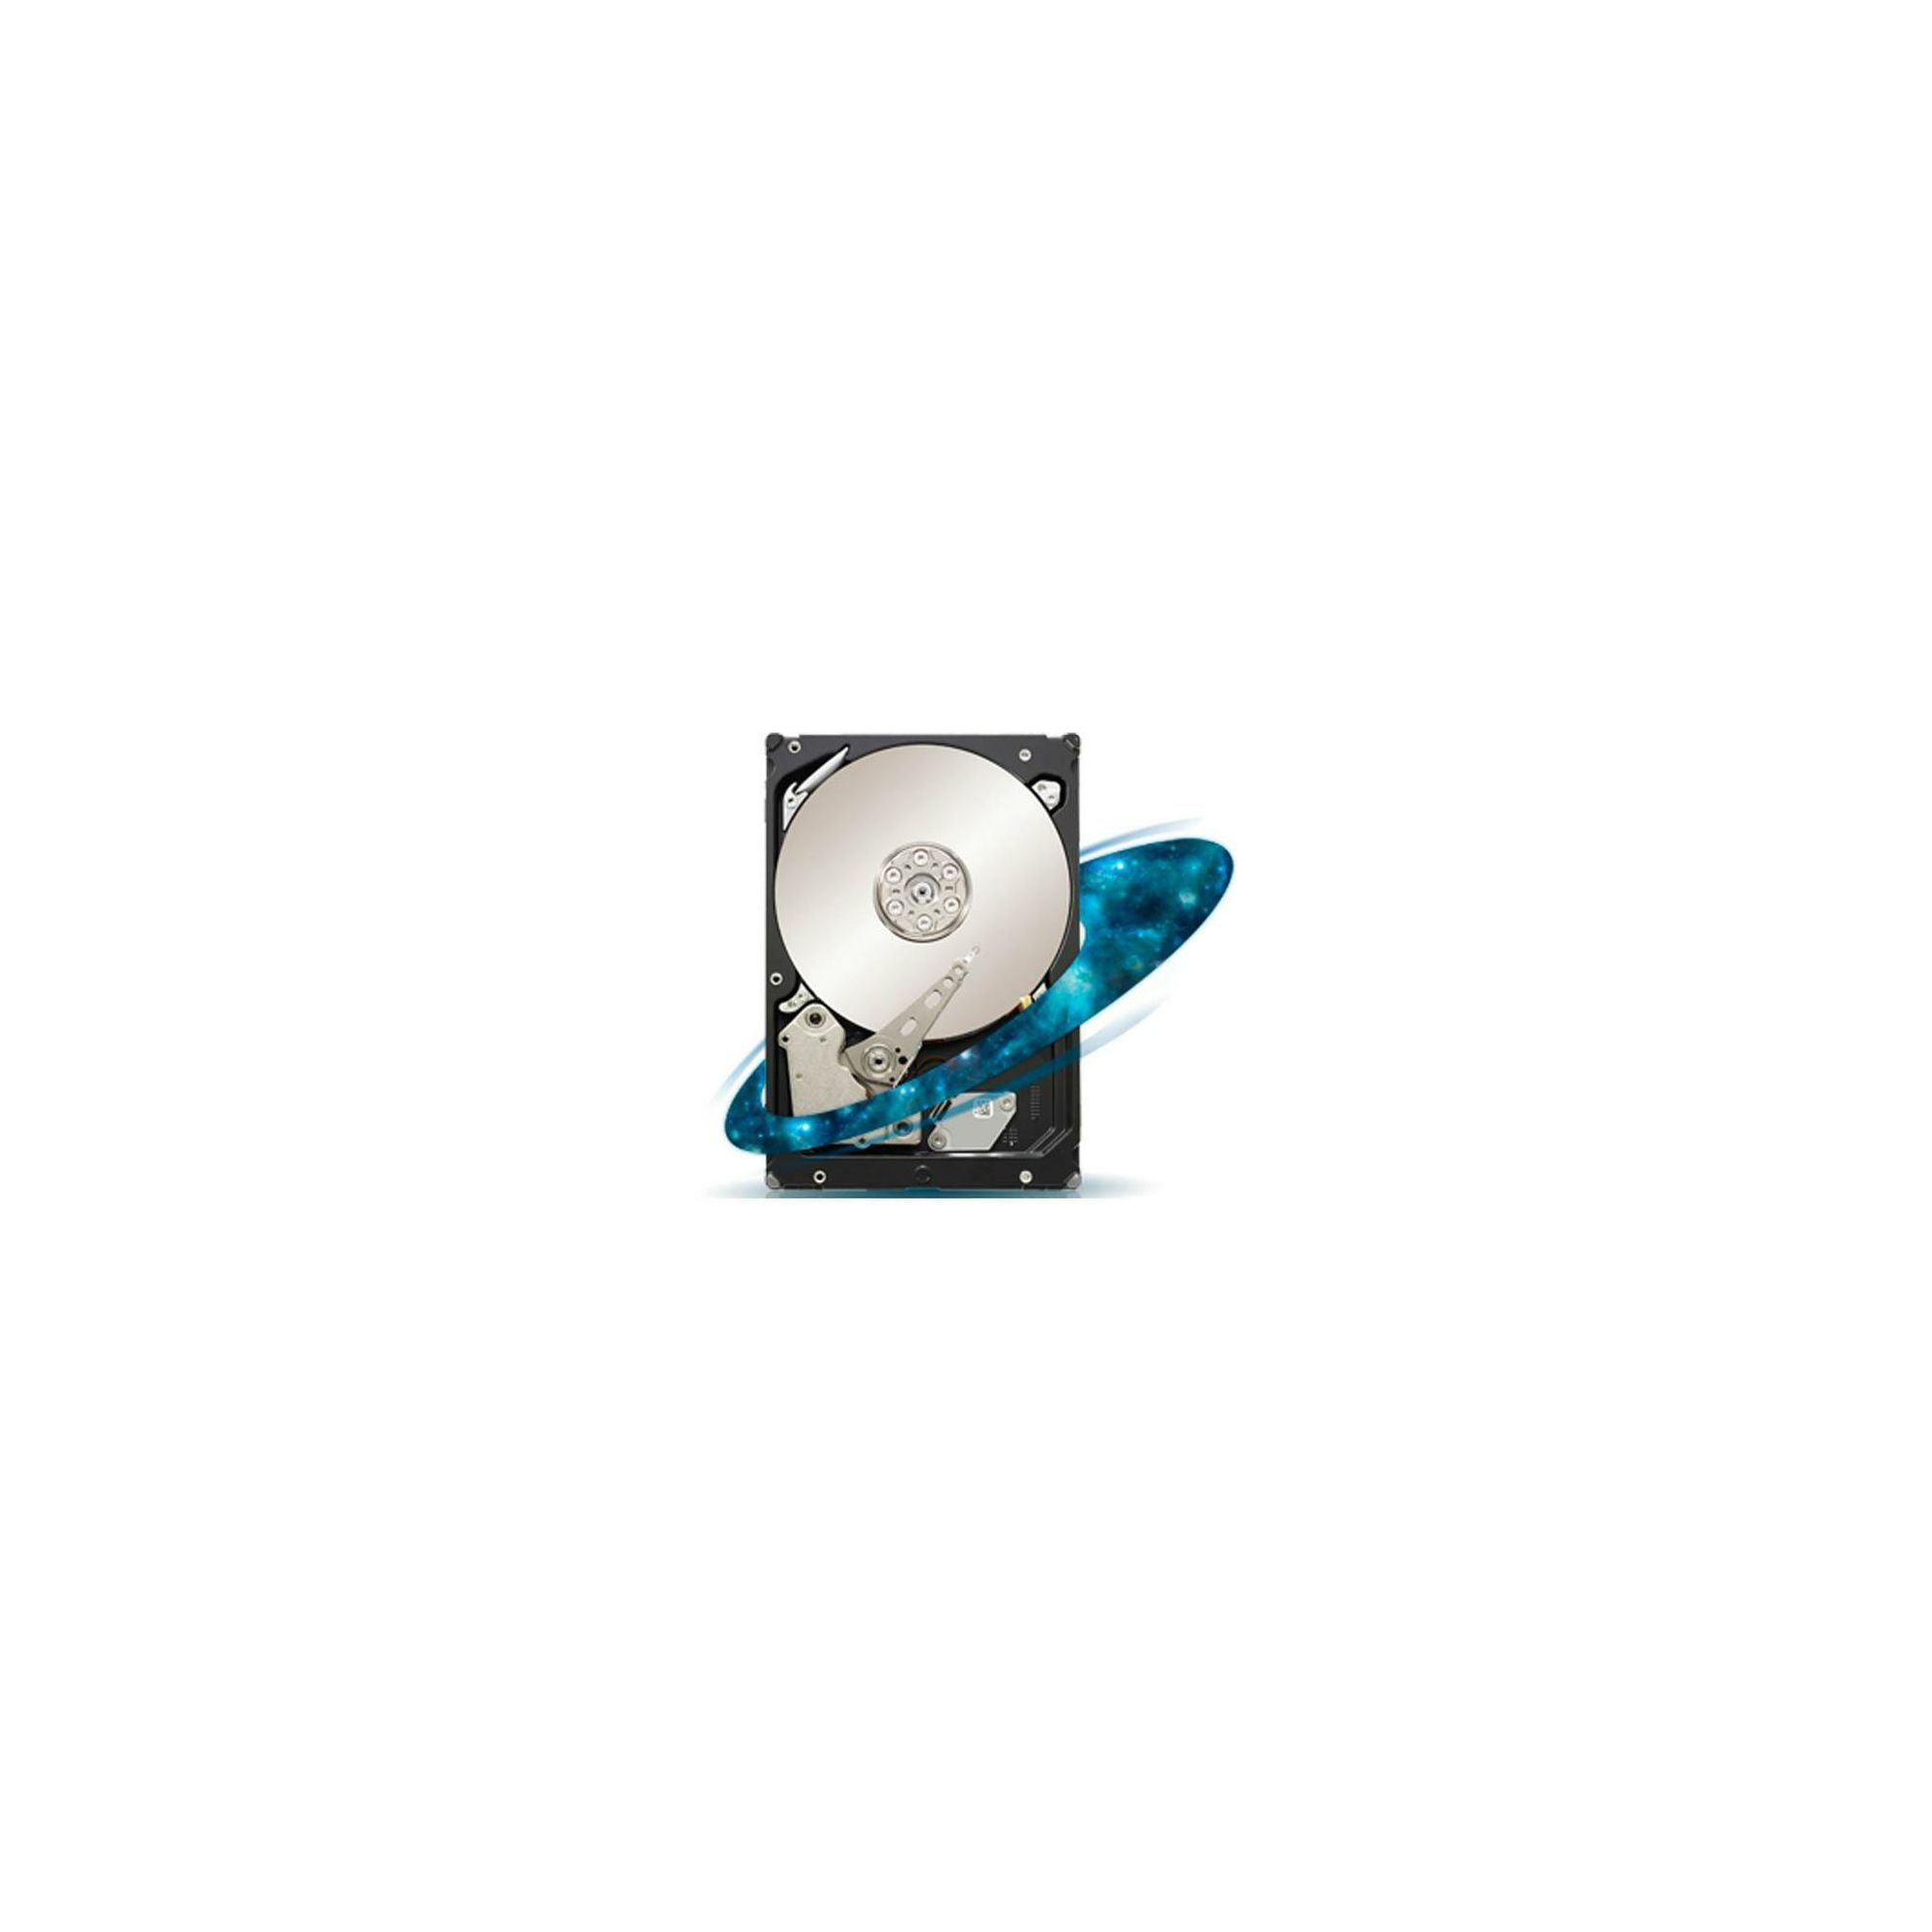 Seagate Constellation ES.2 SATA 6Gb/s 3-TB Hard Drive at Tesco Direct